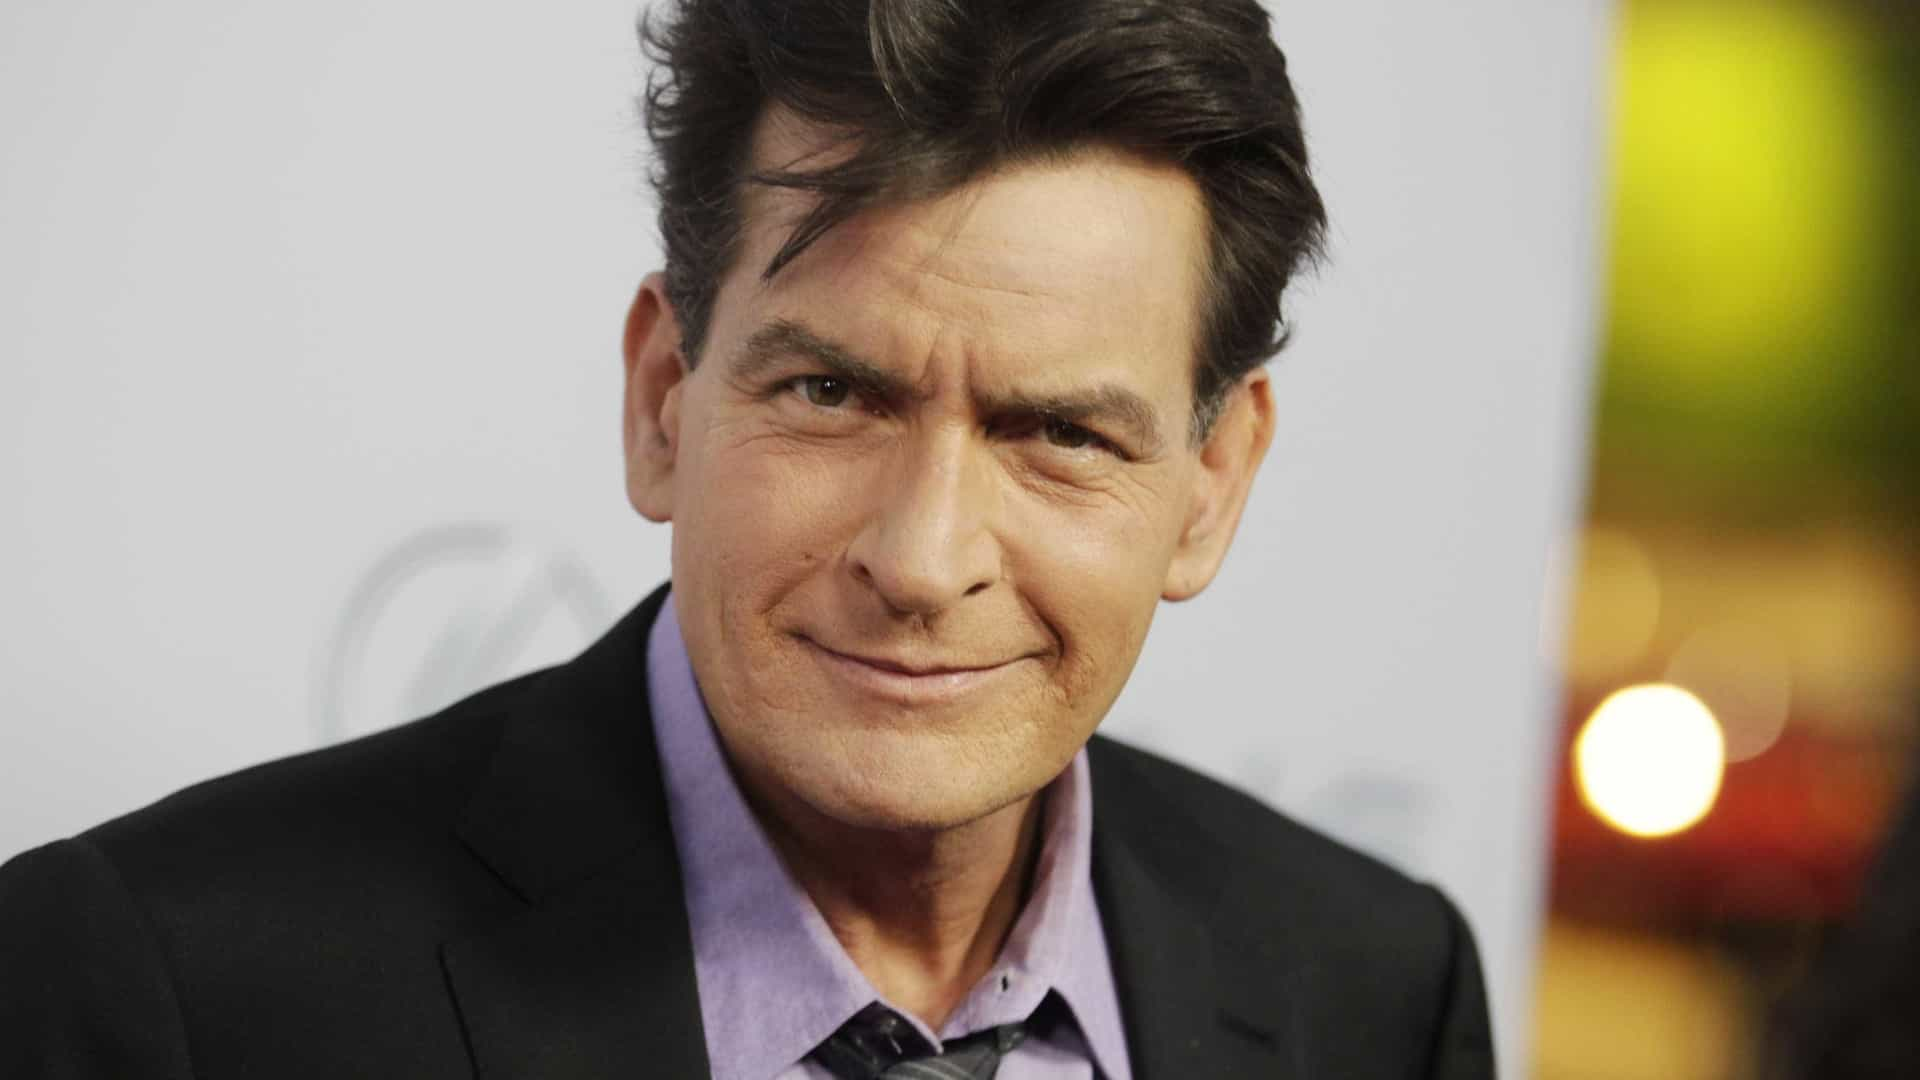 Charlie Sheen acusado de abuso sexual